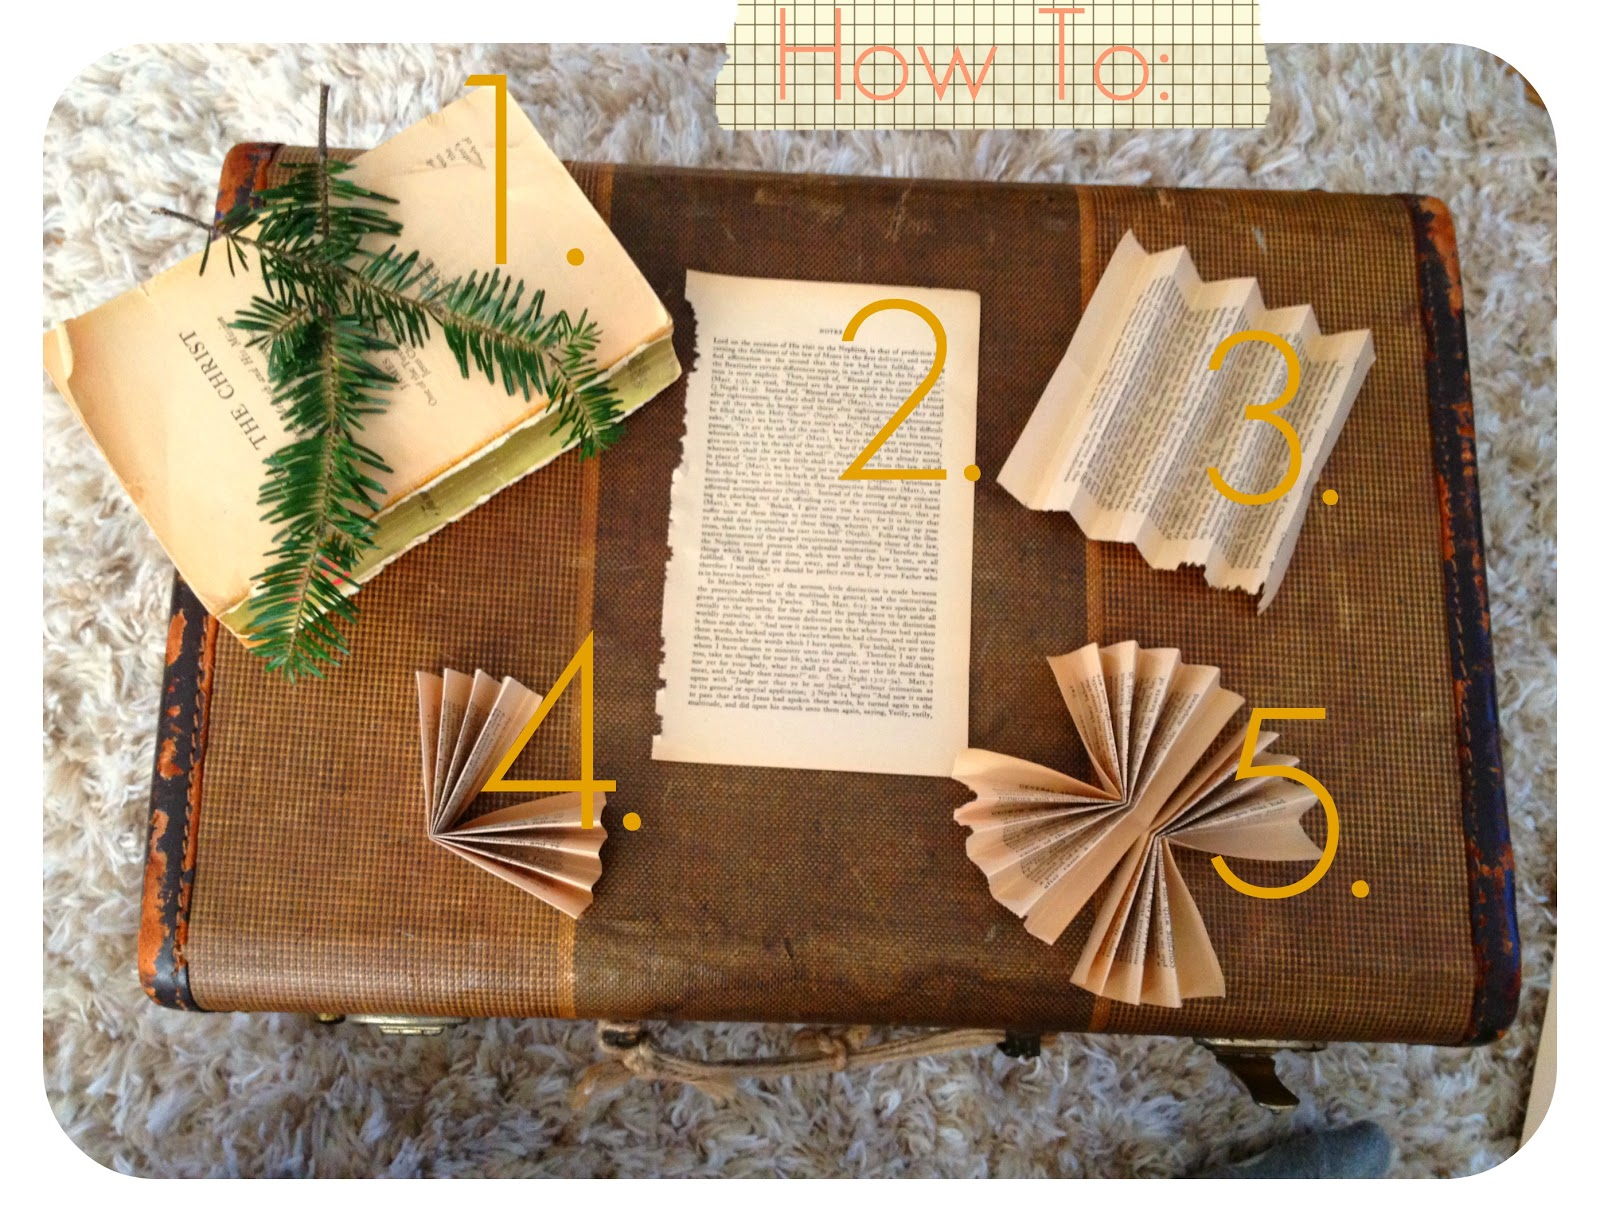 Christmas do it yourself roundup 2 a book theme tales of me christmas do it yourself roundup 2 a book theme solutioingenieria Image collections